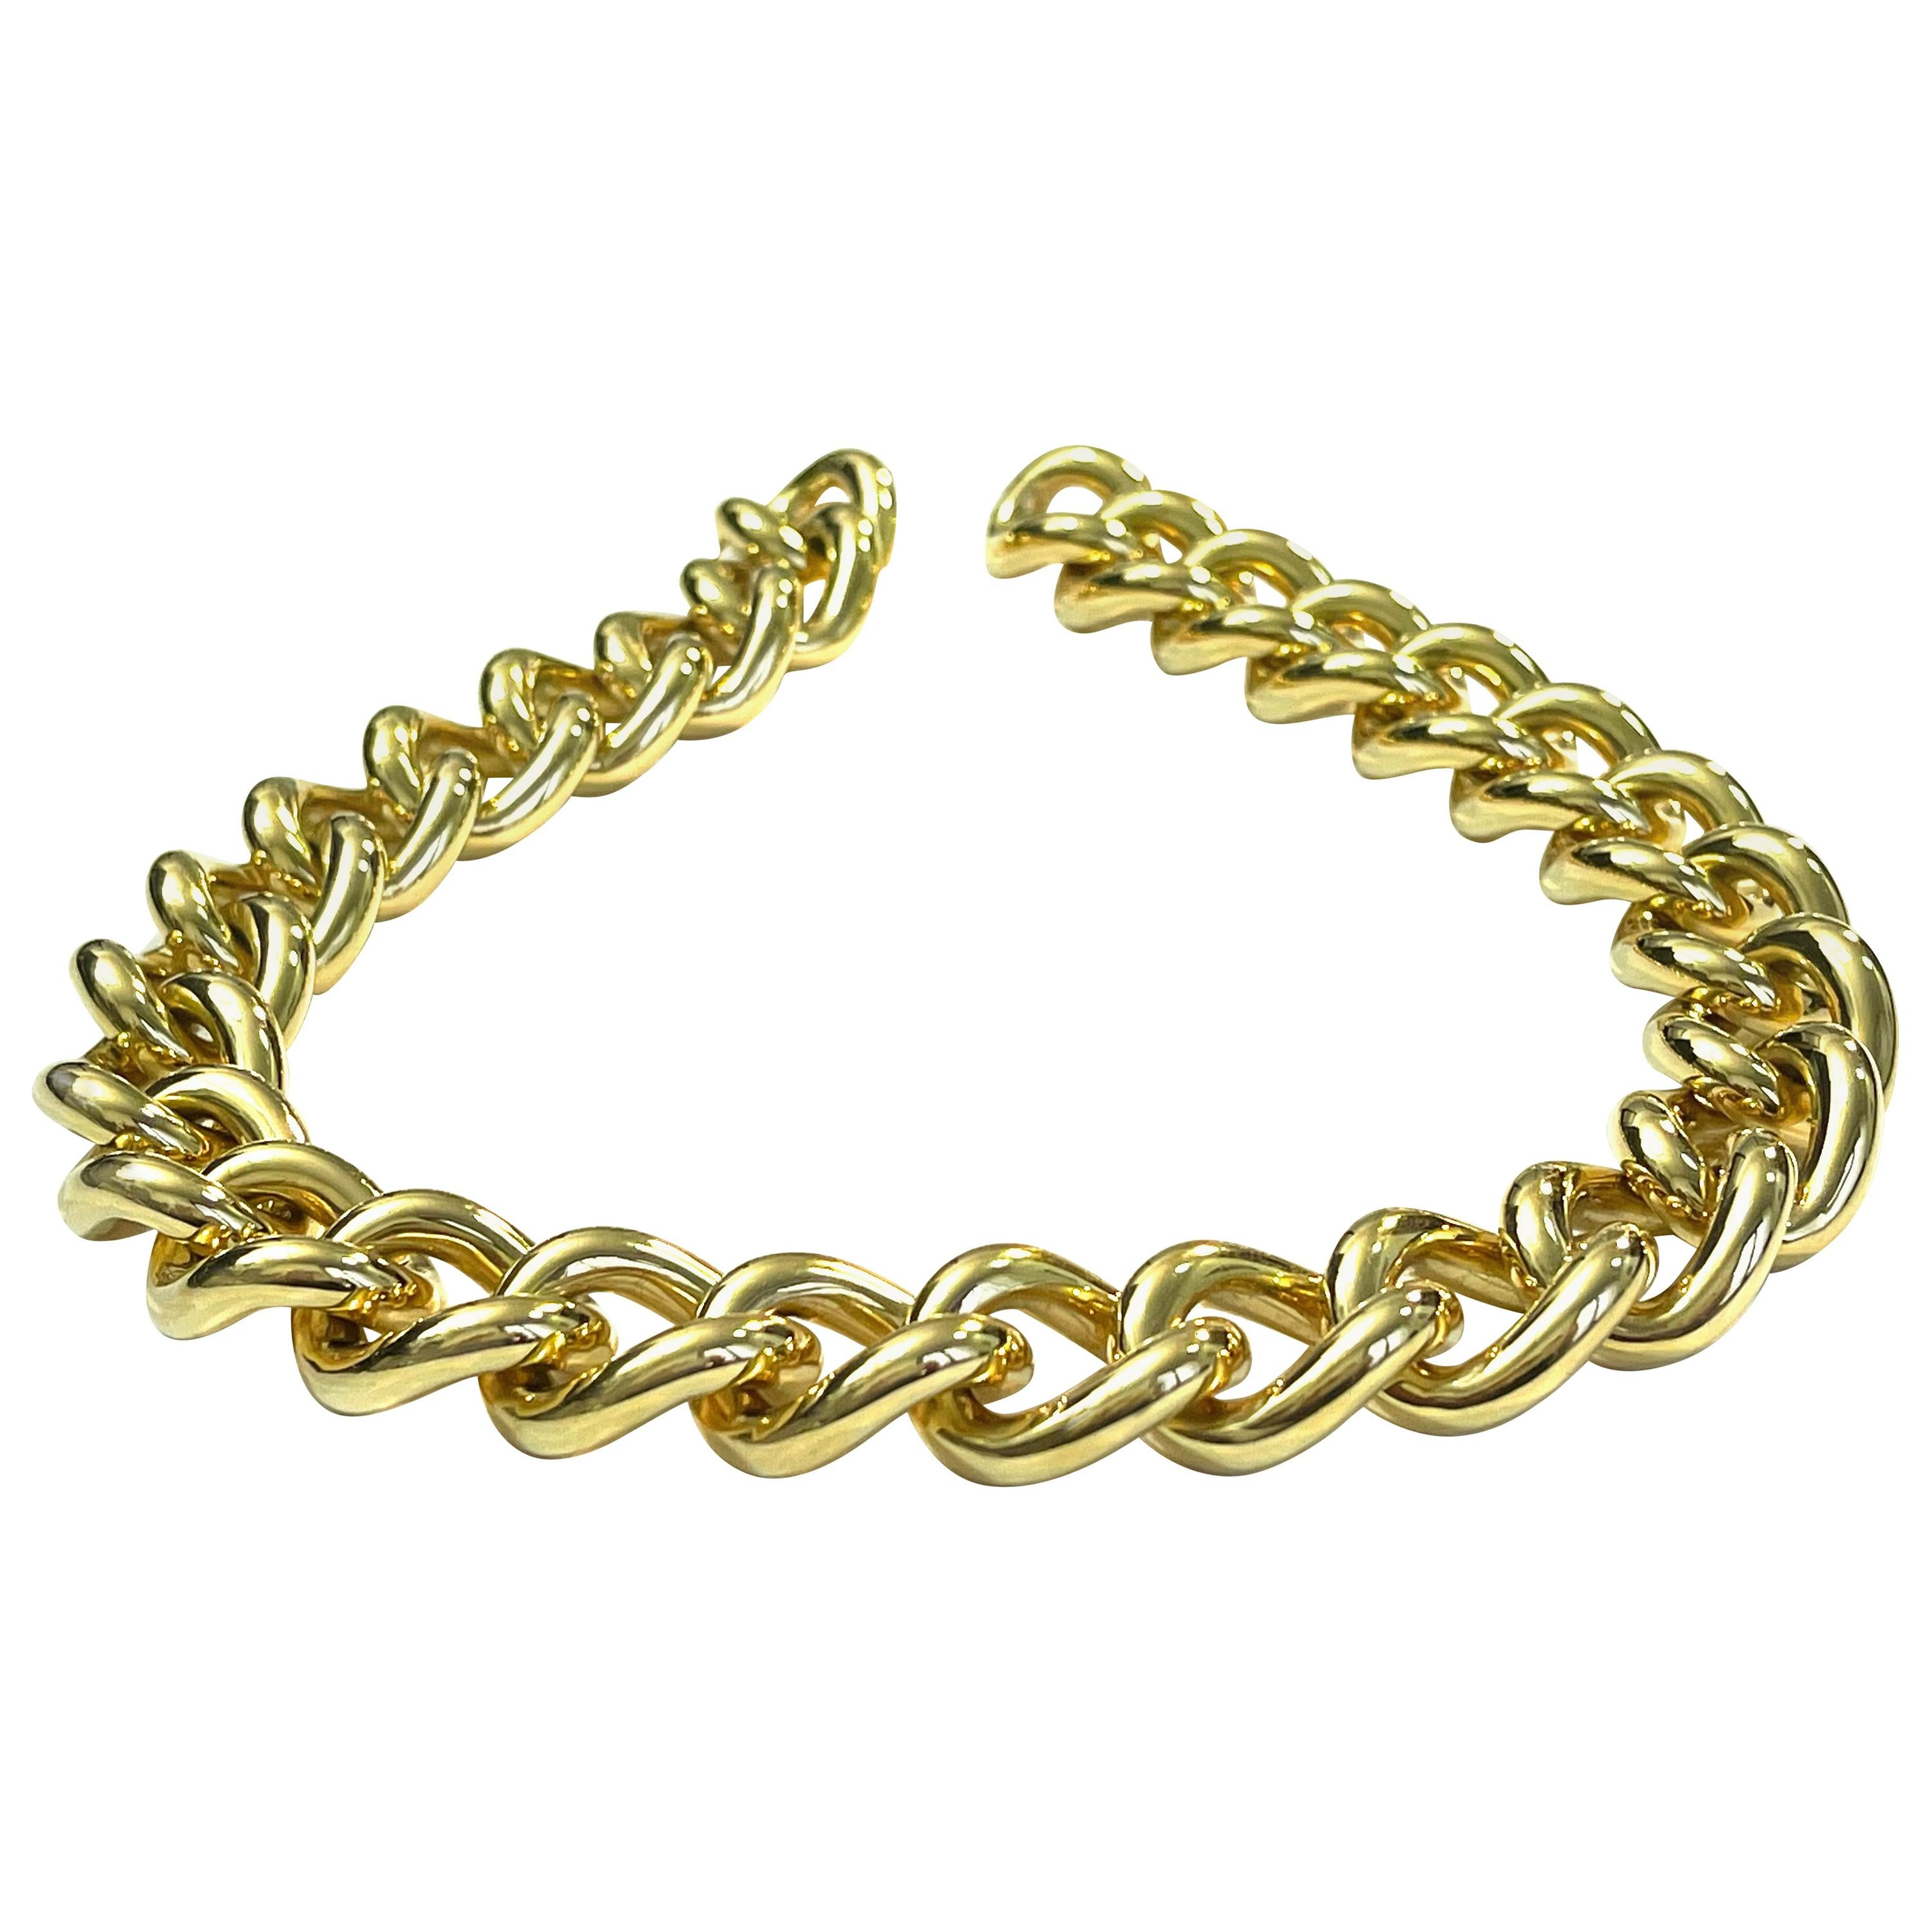 Classic Groumette Necklace 18 Kt Yellow Gold